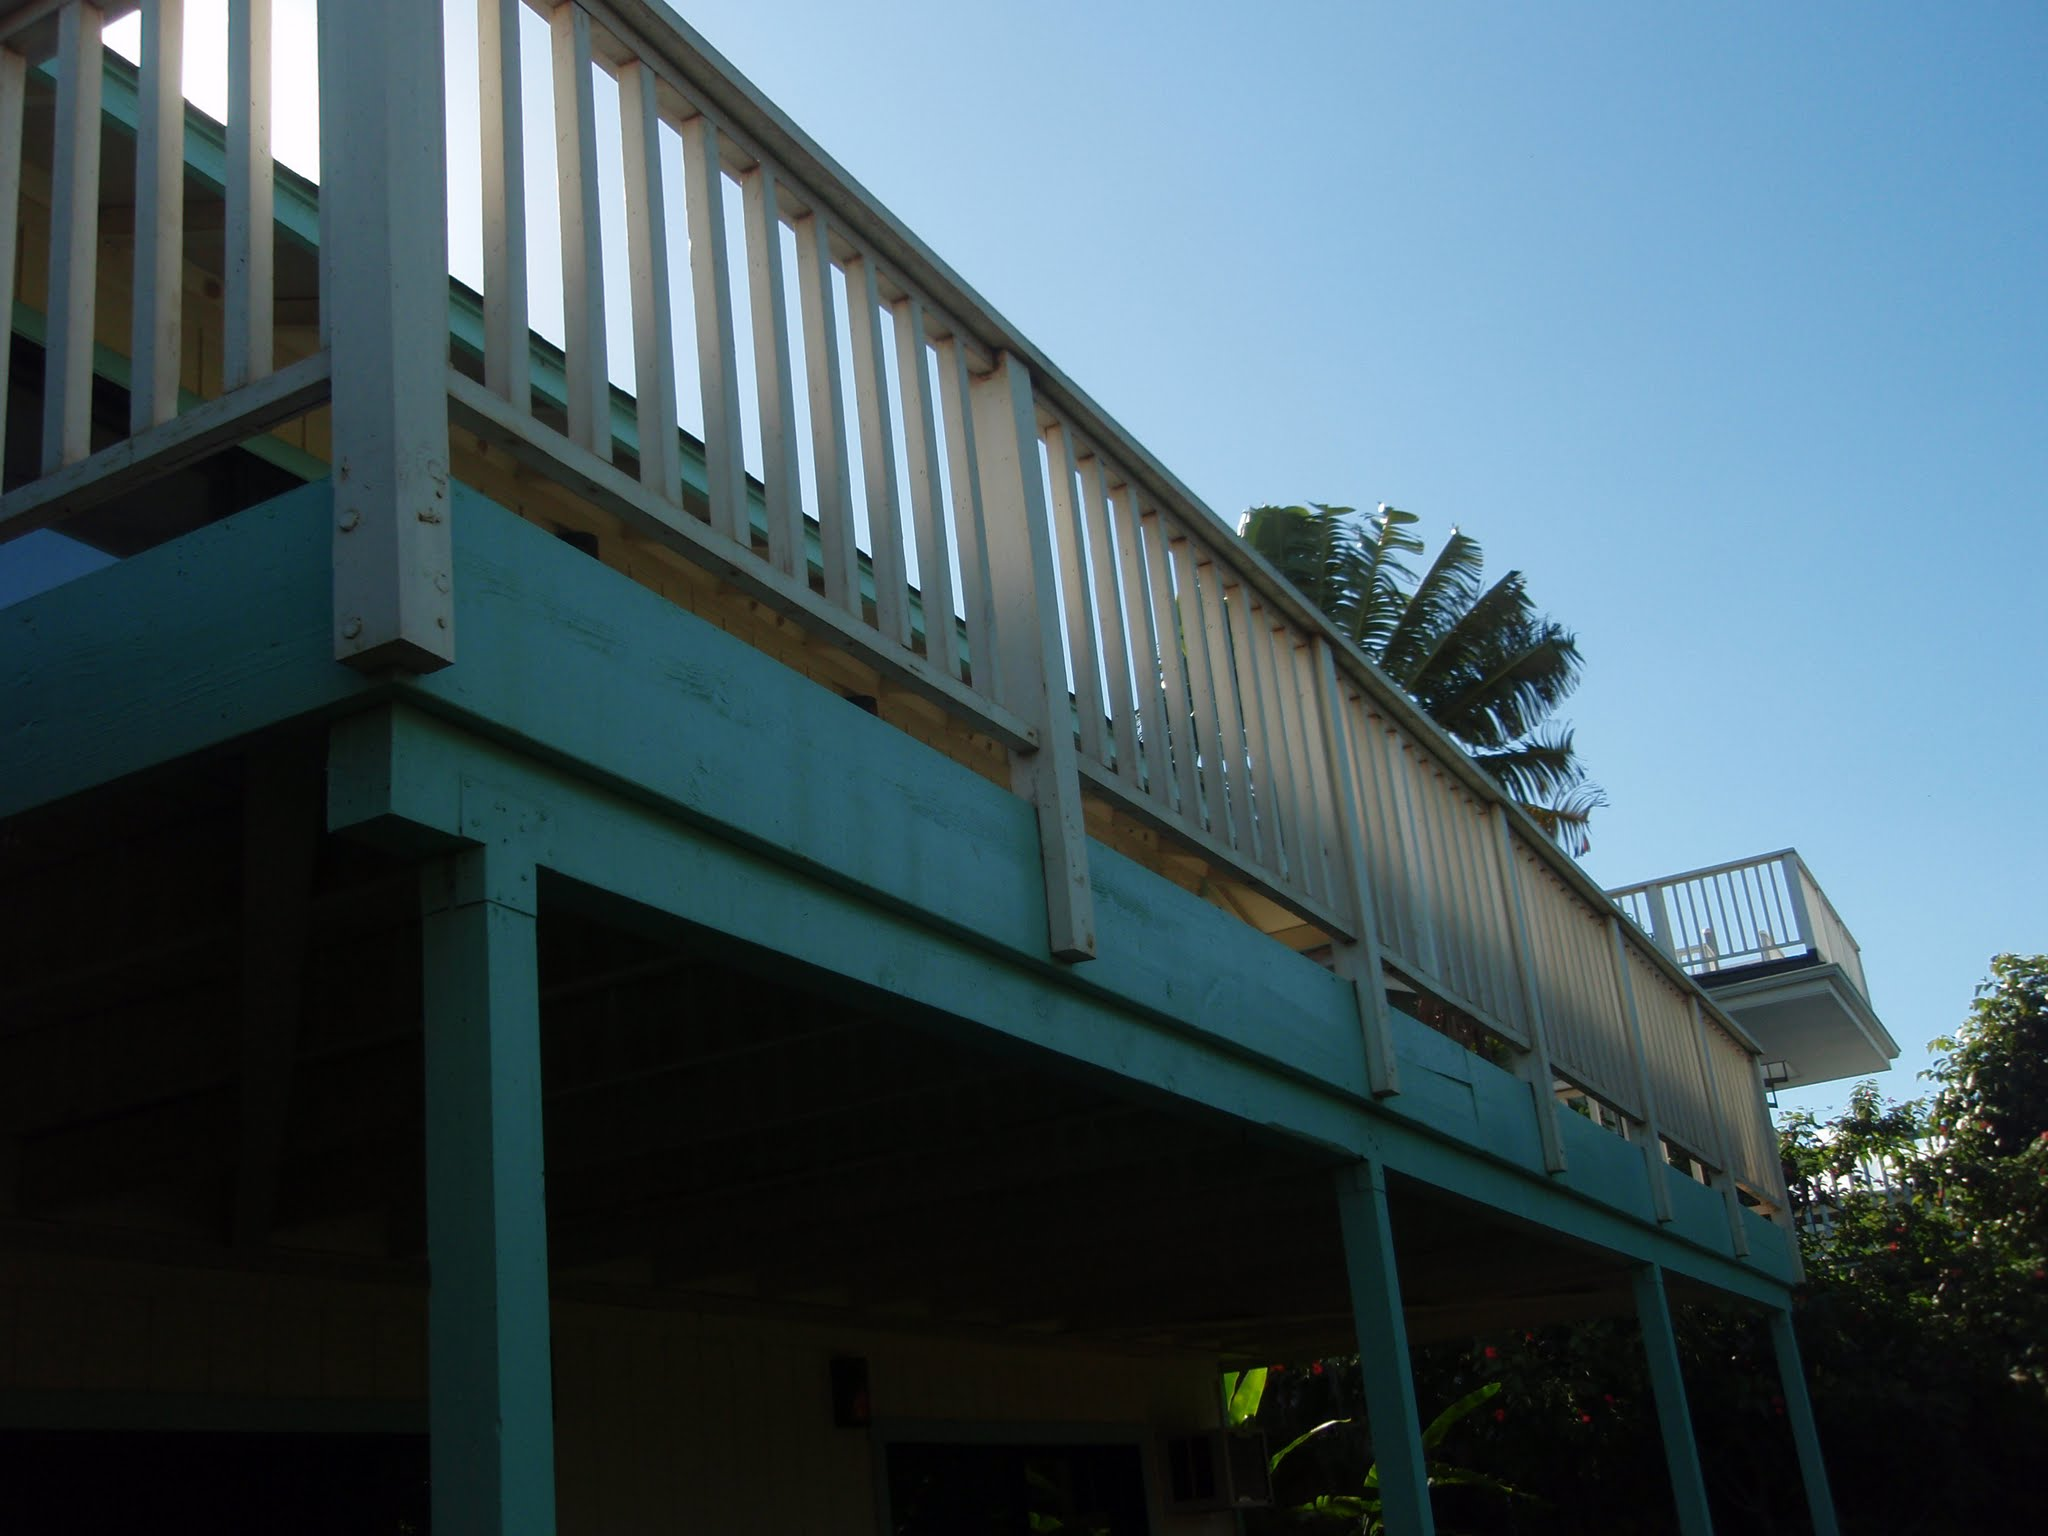 The old rear deck with wood posts & railing befroe restoration